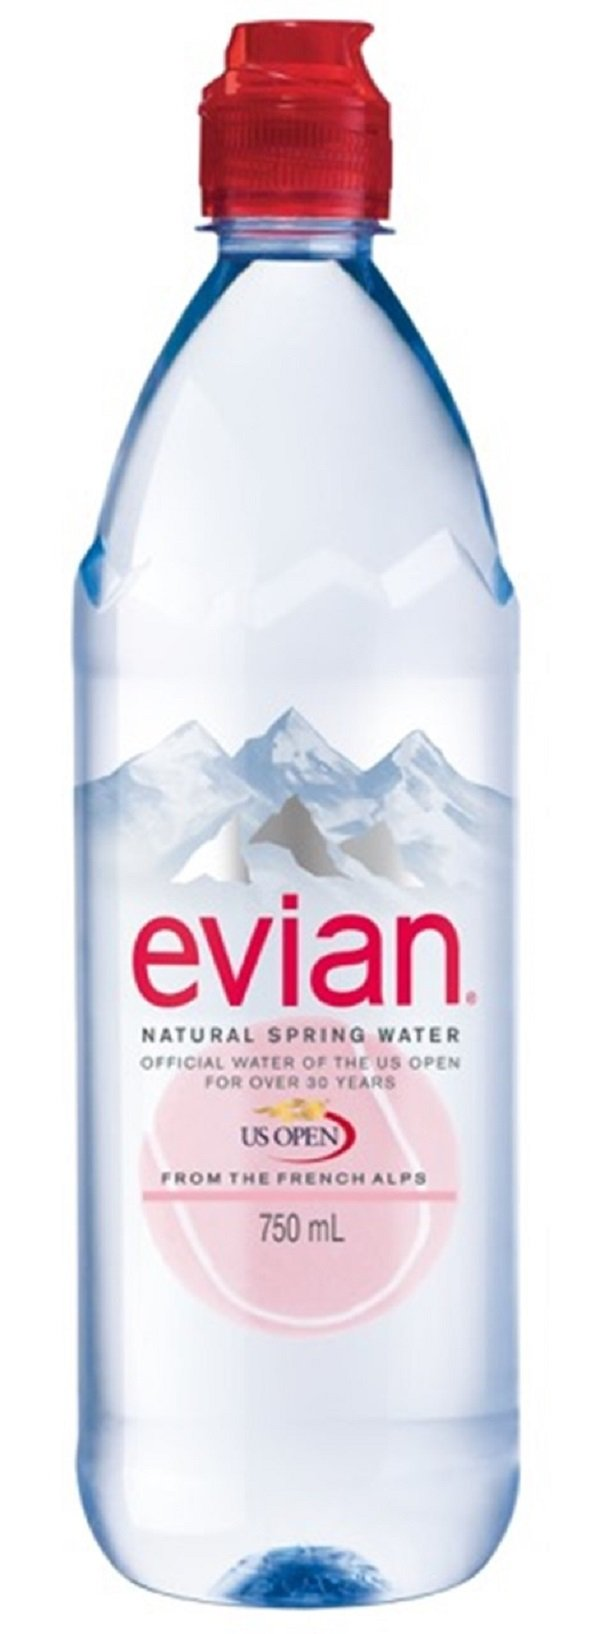 Cheap Evian Spring Water Find Deals On Line At Facial Spray 300 Ml Get Quotations Natural 750 Sport Cap 12 Count